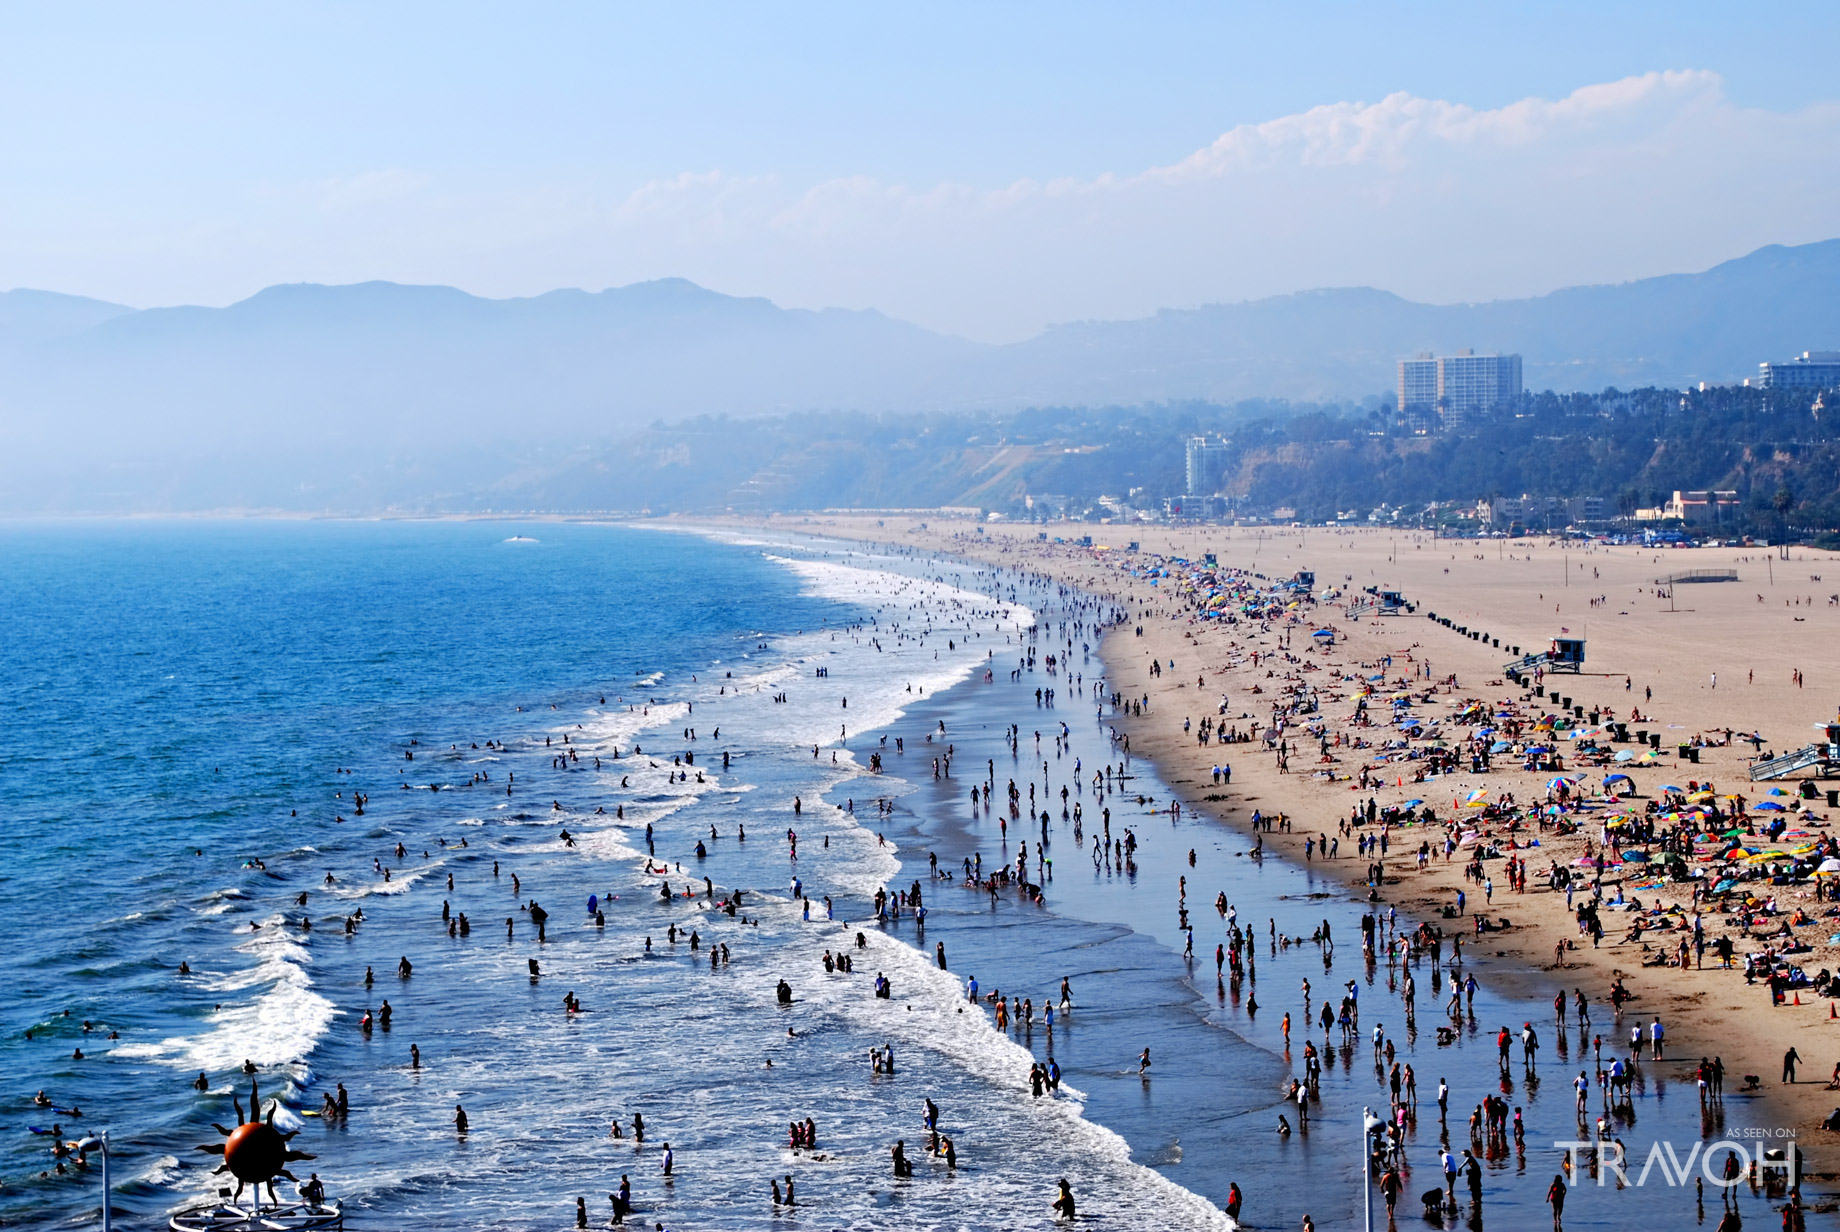 Santa Monica Beach - Exploring 10 of the Top Beaches in Los Angeles, California